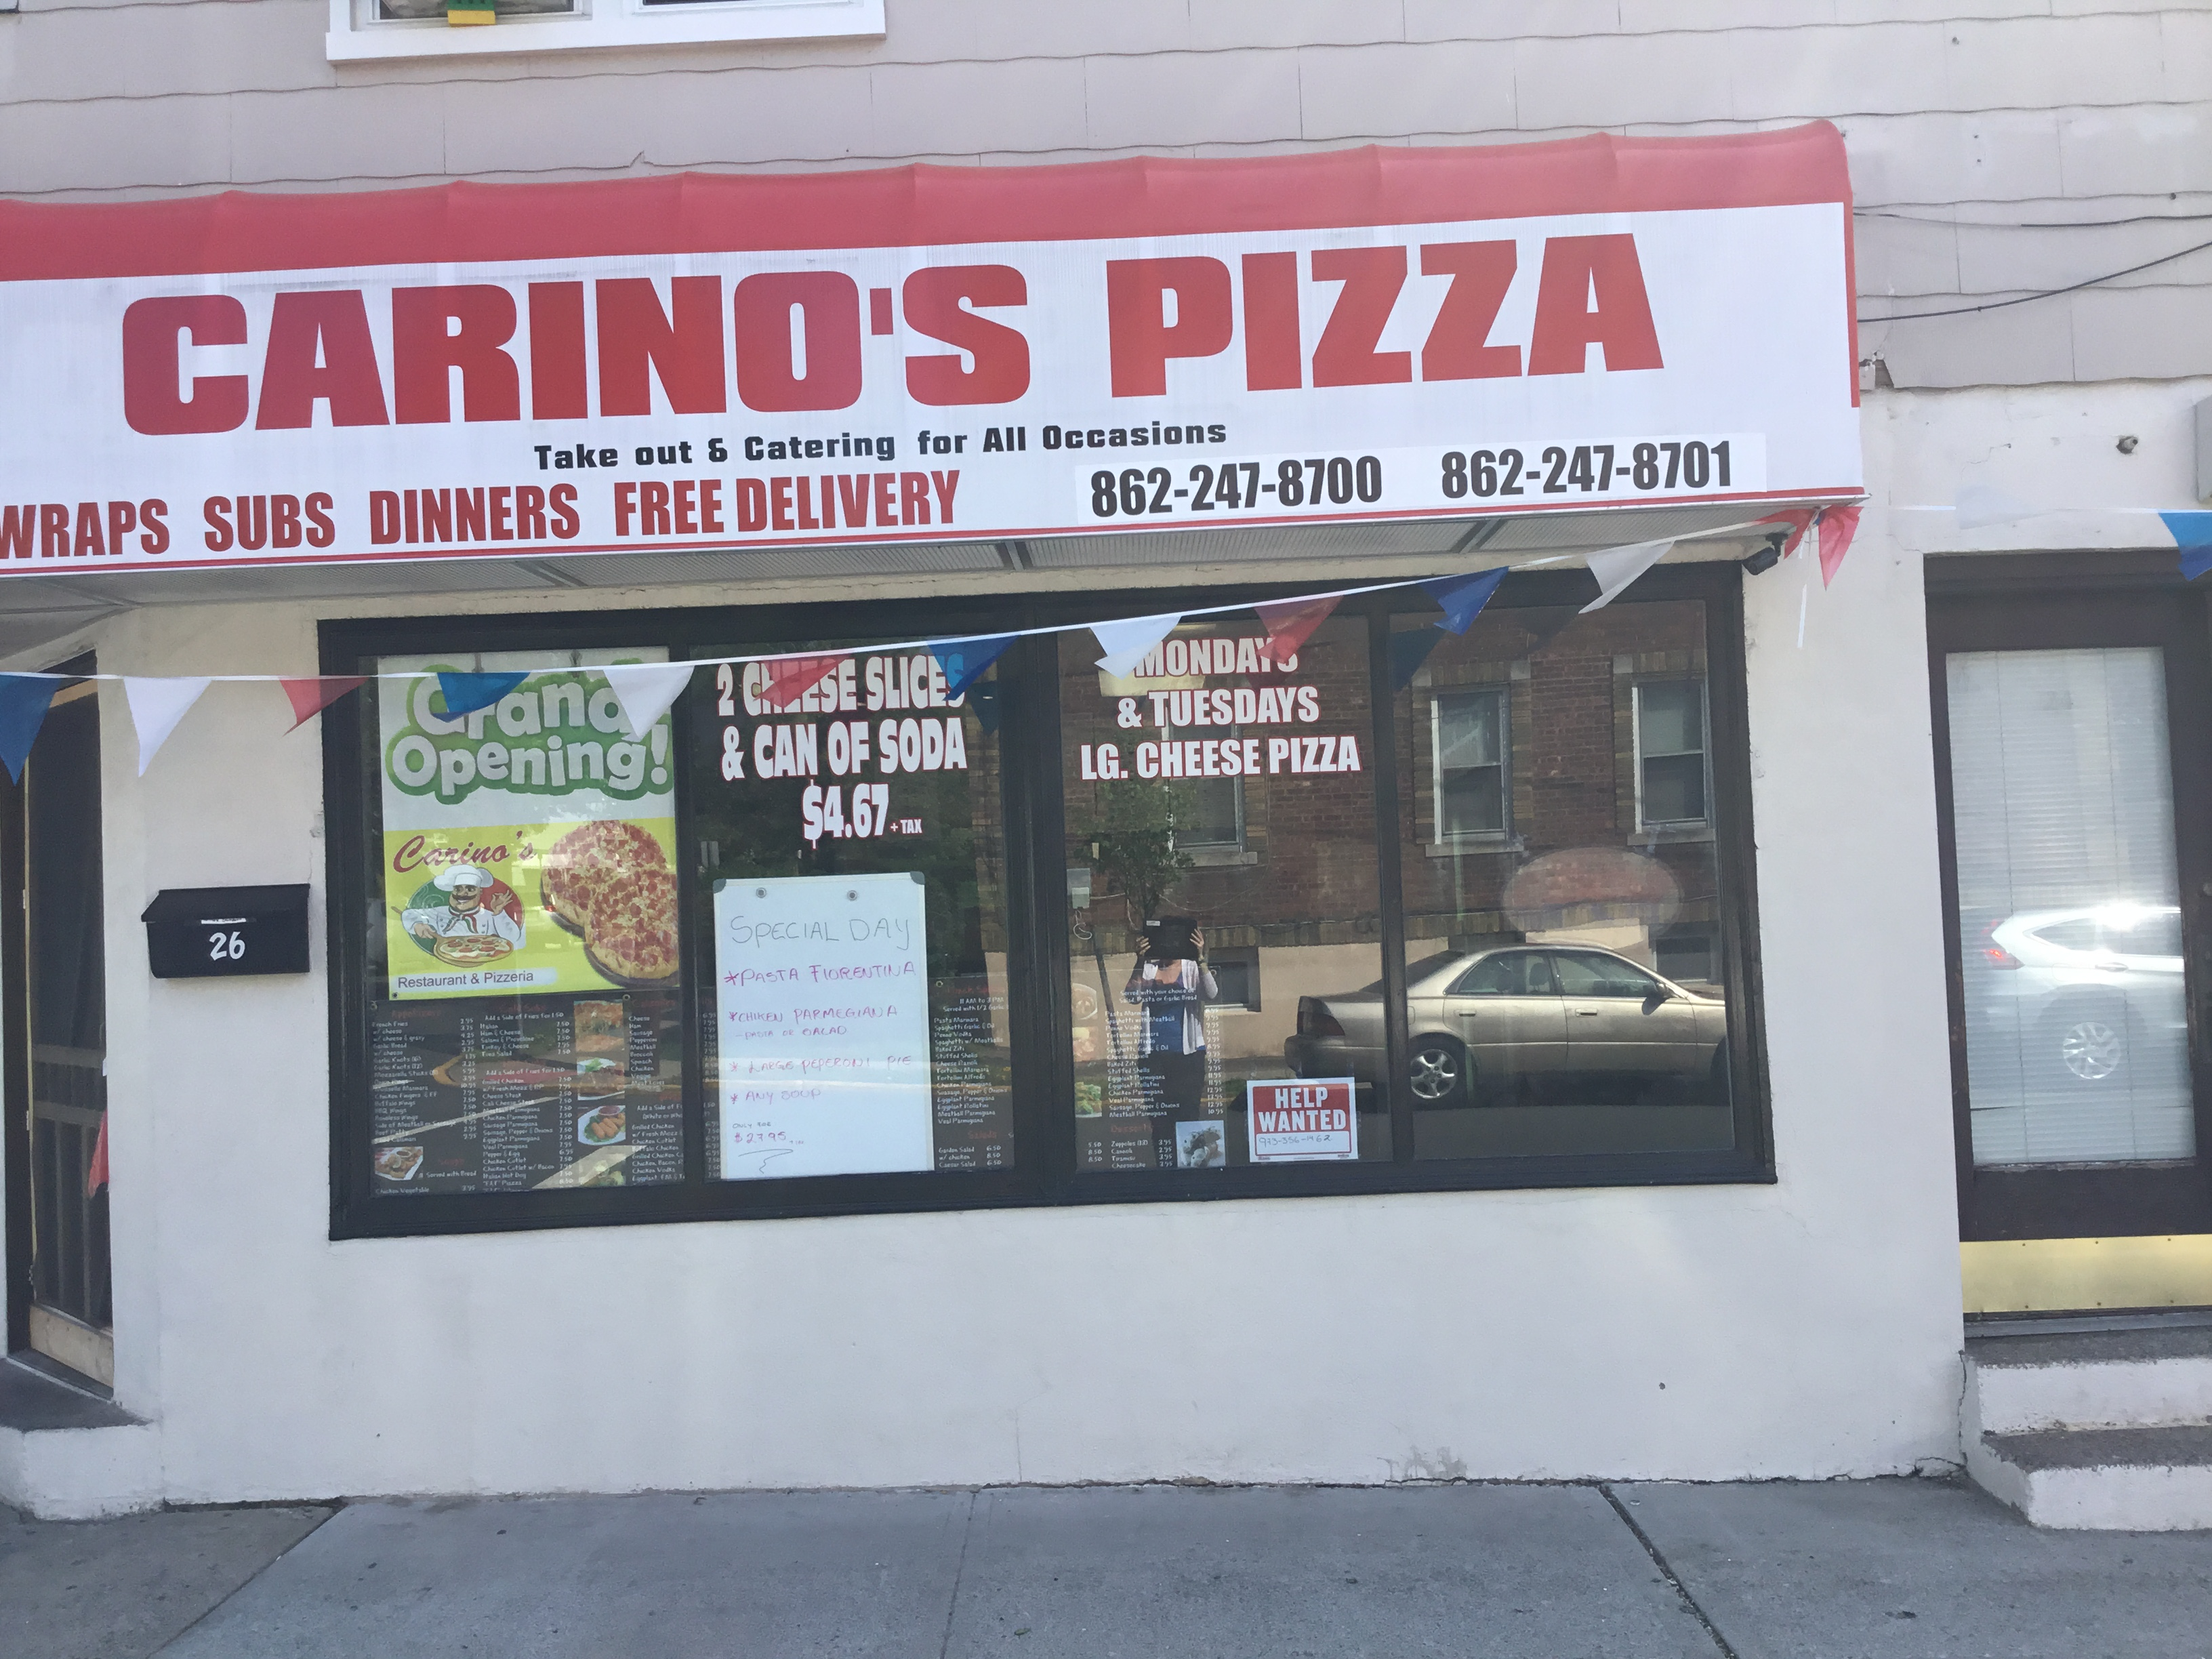 Carimo's Restaurant and pizzeria image 1